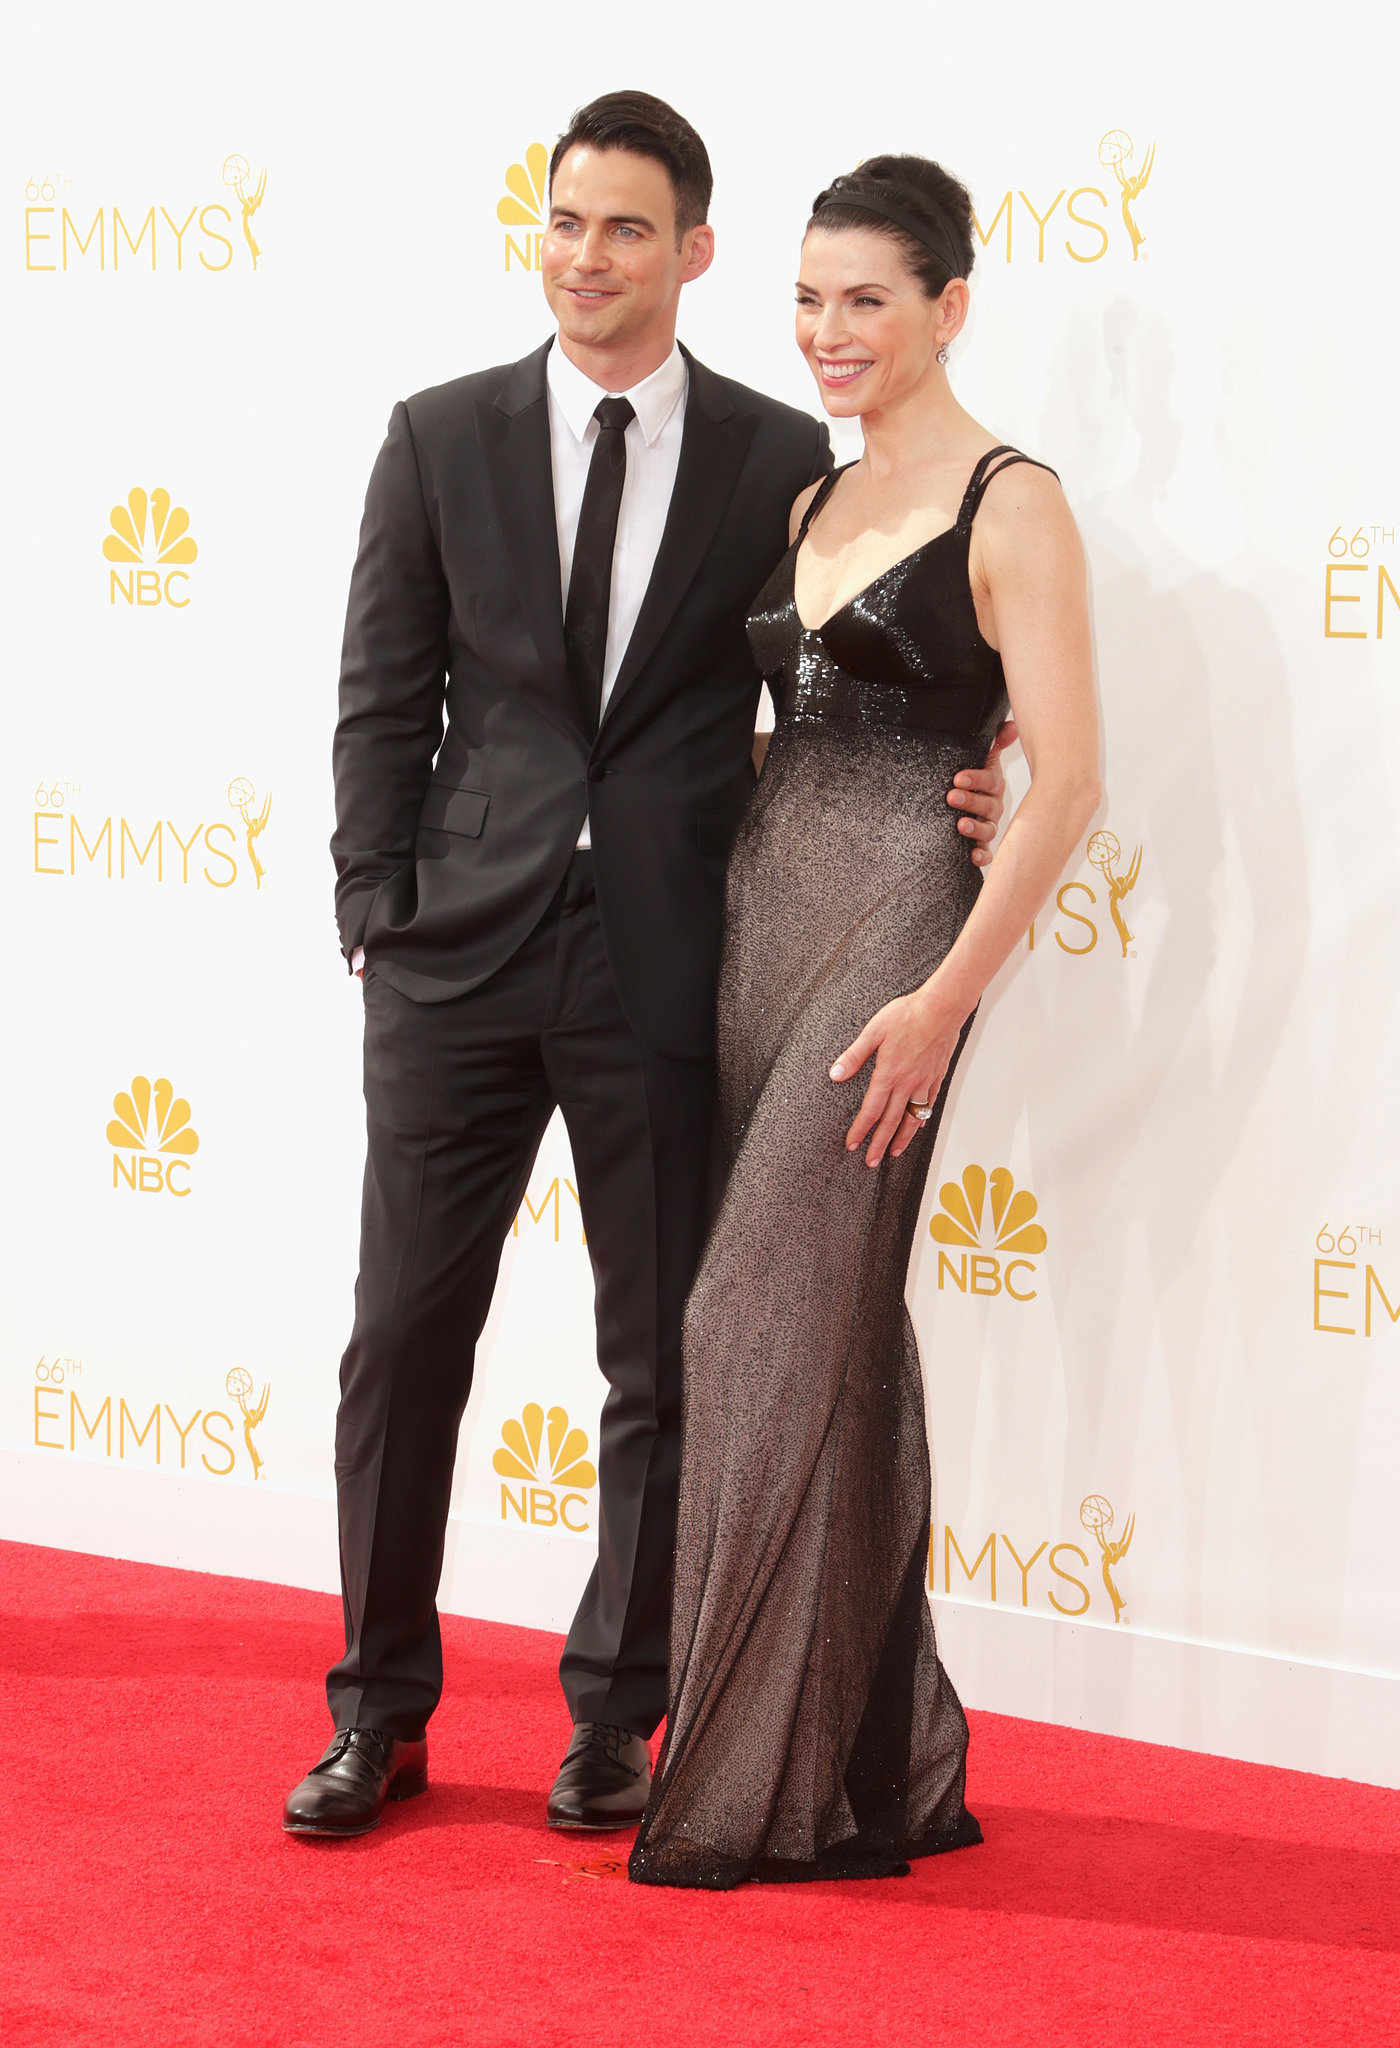 Did You See Julianna Margulies's Hot Husband at the Emmys?